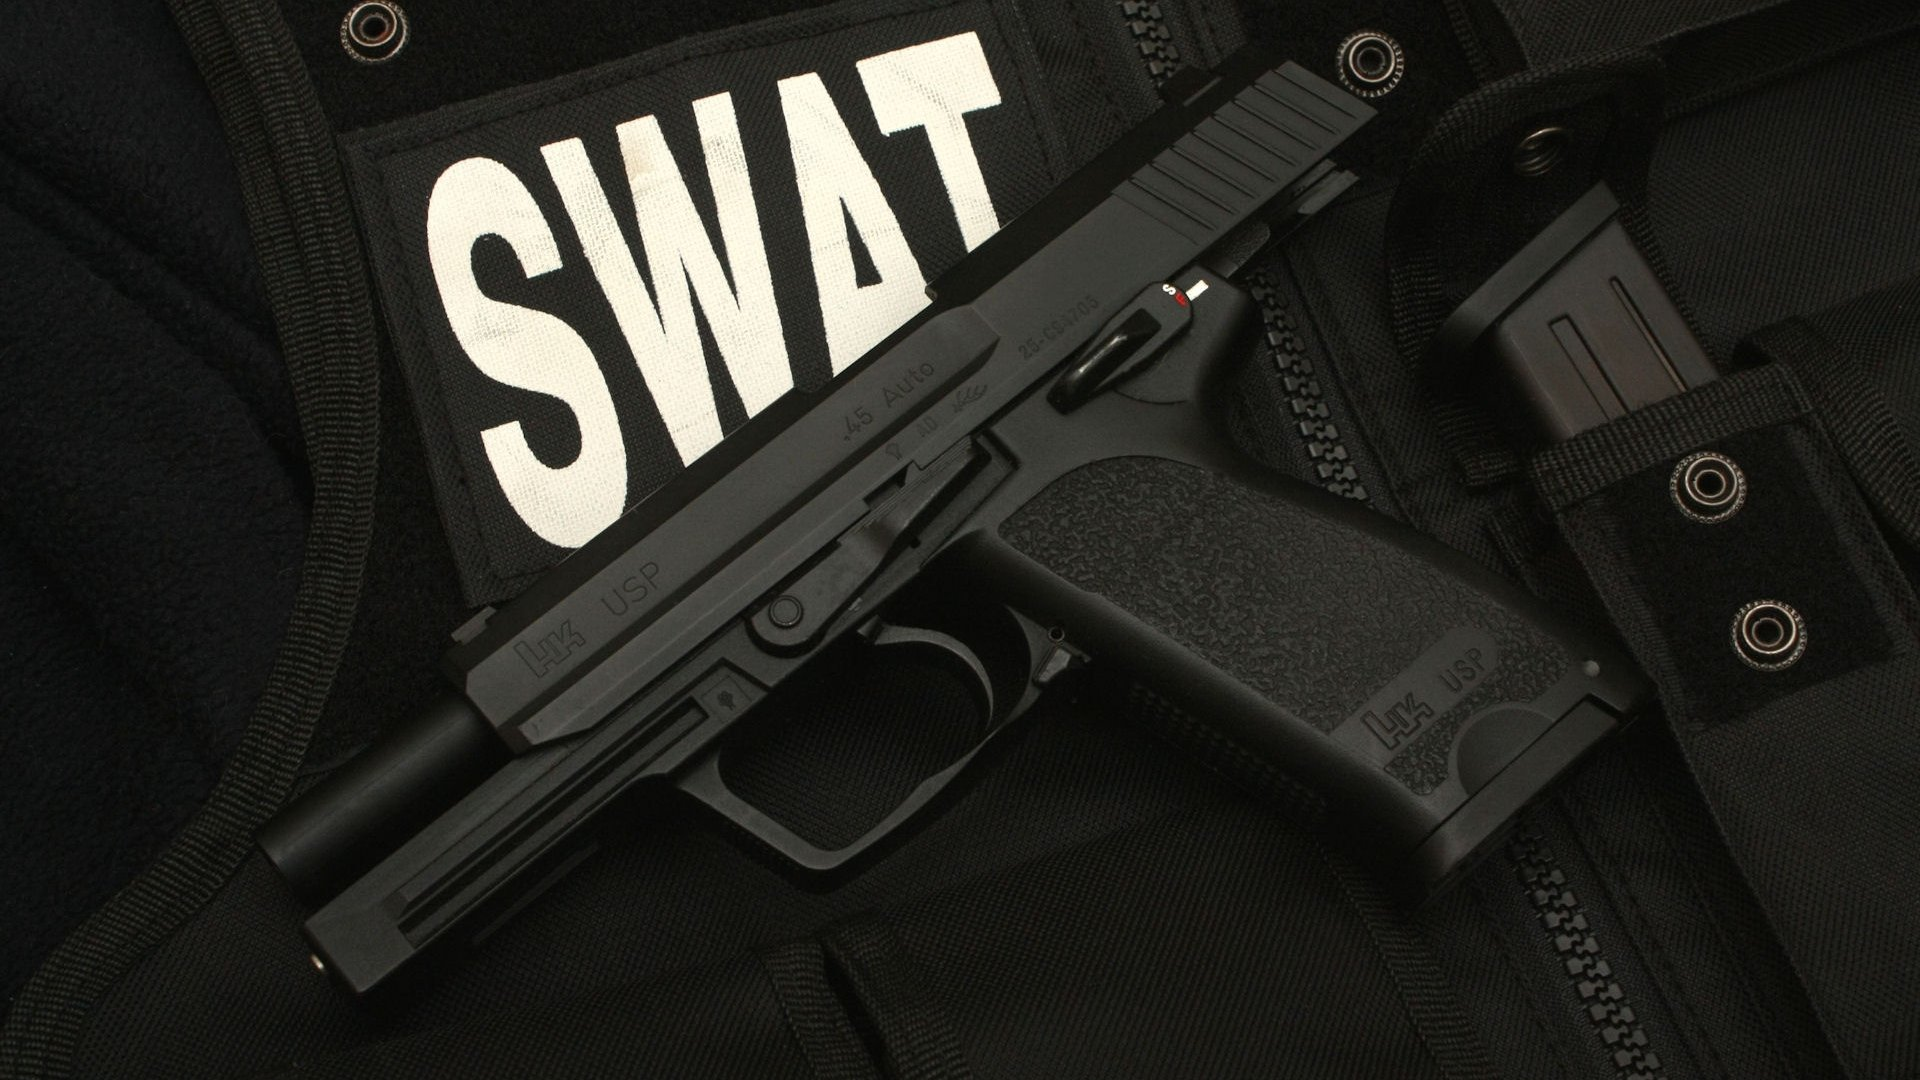 film swat codes Swat movie download free free movies collection.